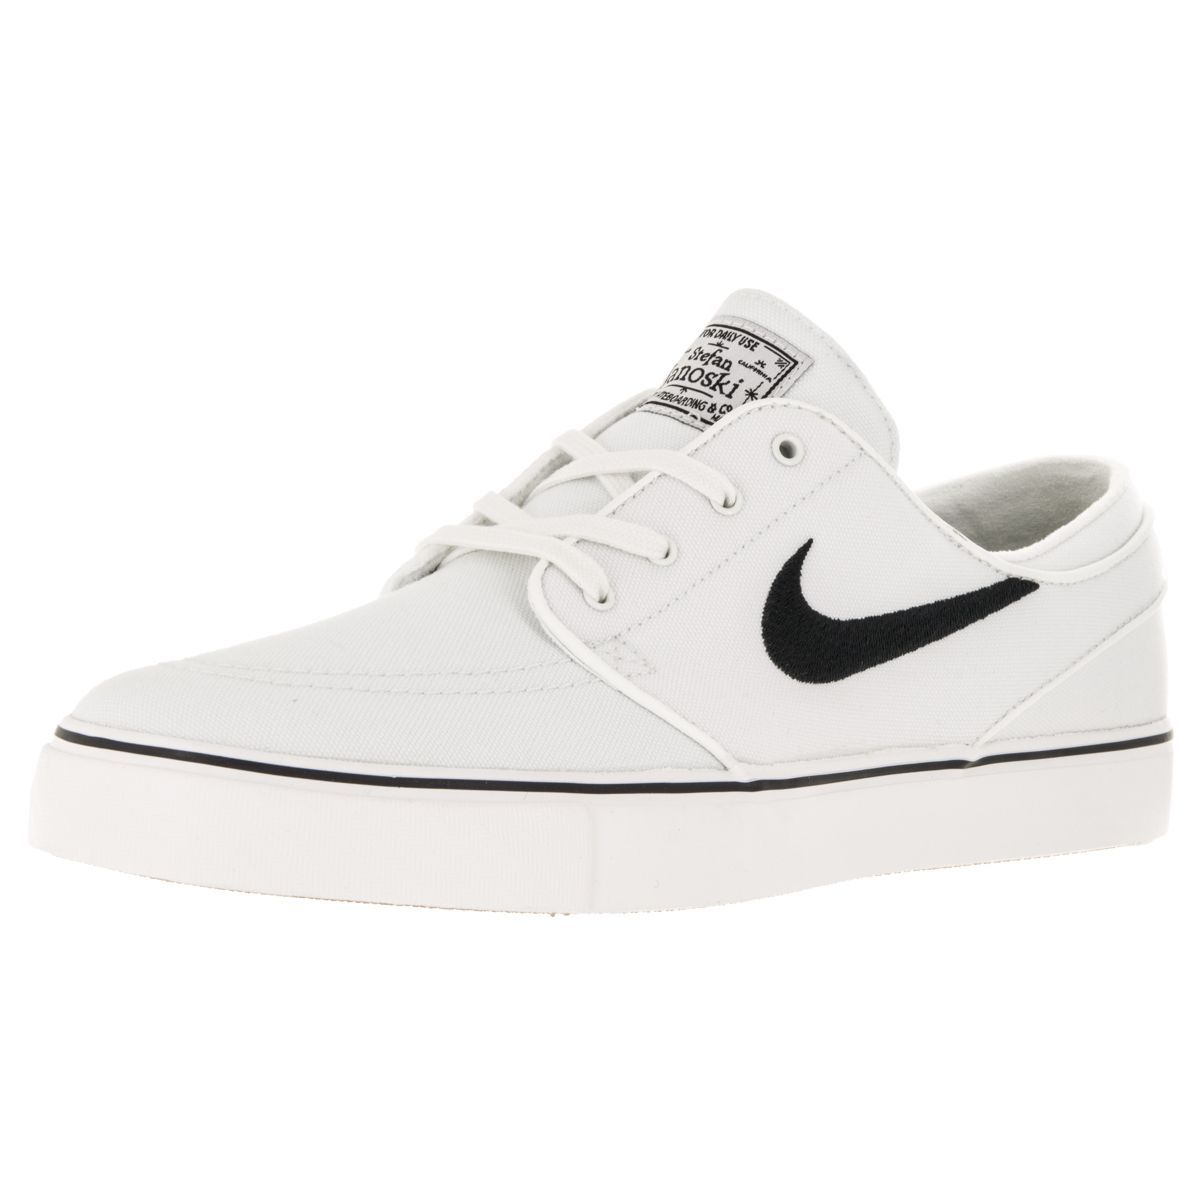 Wear these traditional-style Nike Zoom Stefan Janoski Summit skate shoes  whether you're